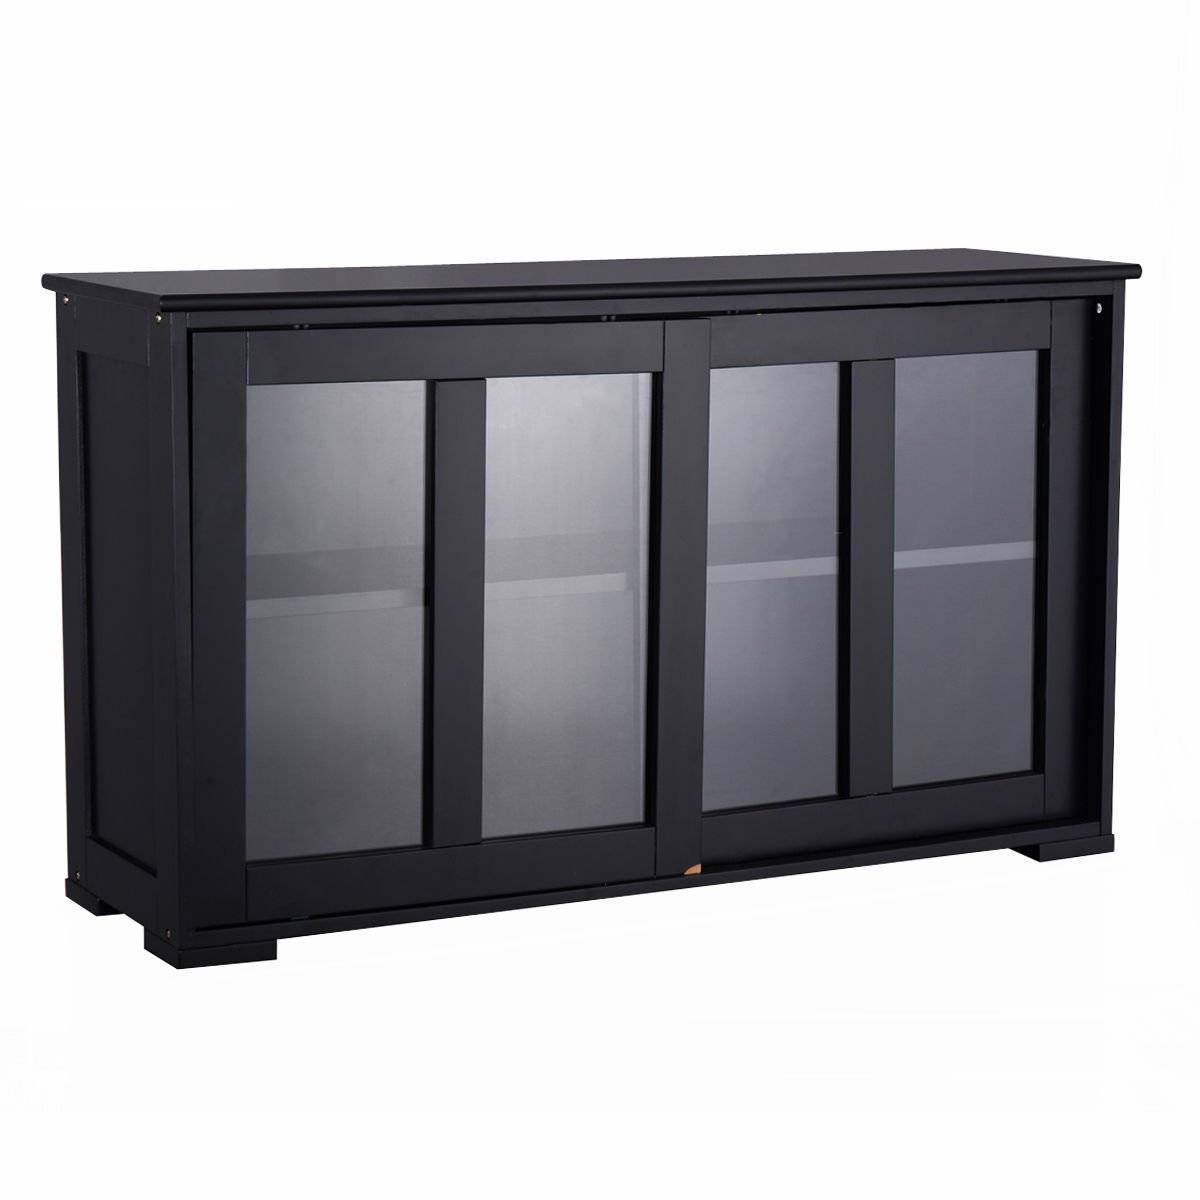 Amazon.com - New Storage Cabinet Sideboard Buffet Cupboard Glass ...